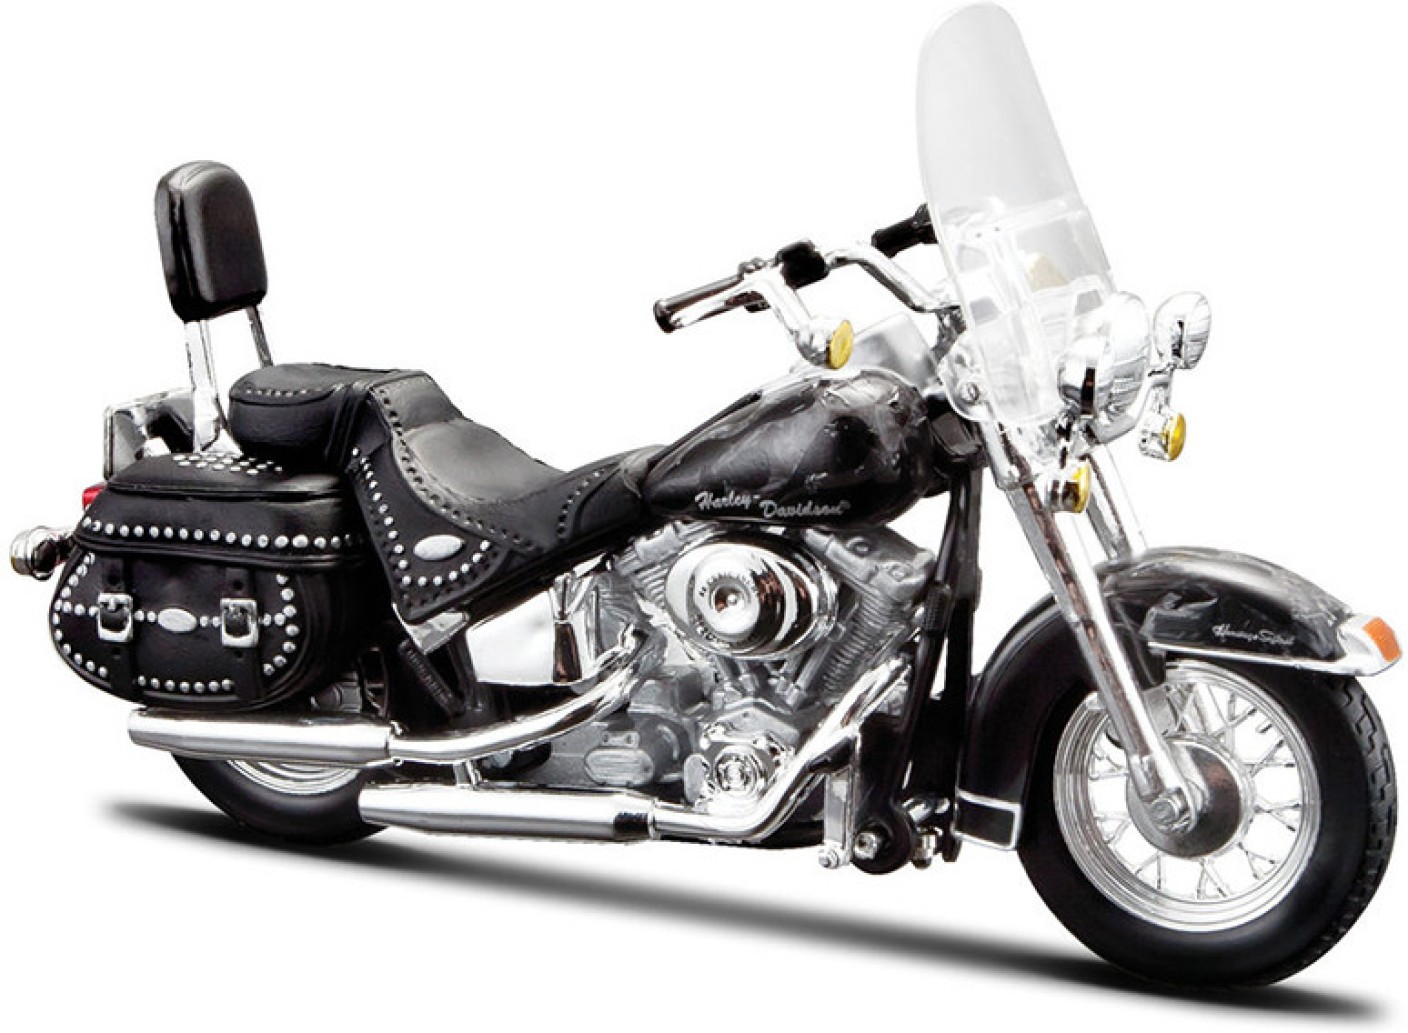 Harley Davidson Softail Battery Specifications